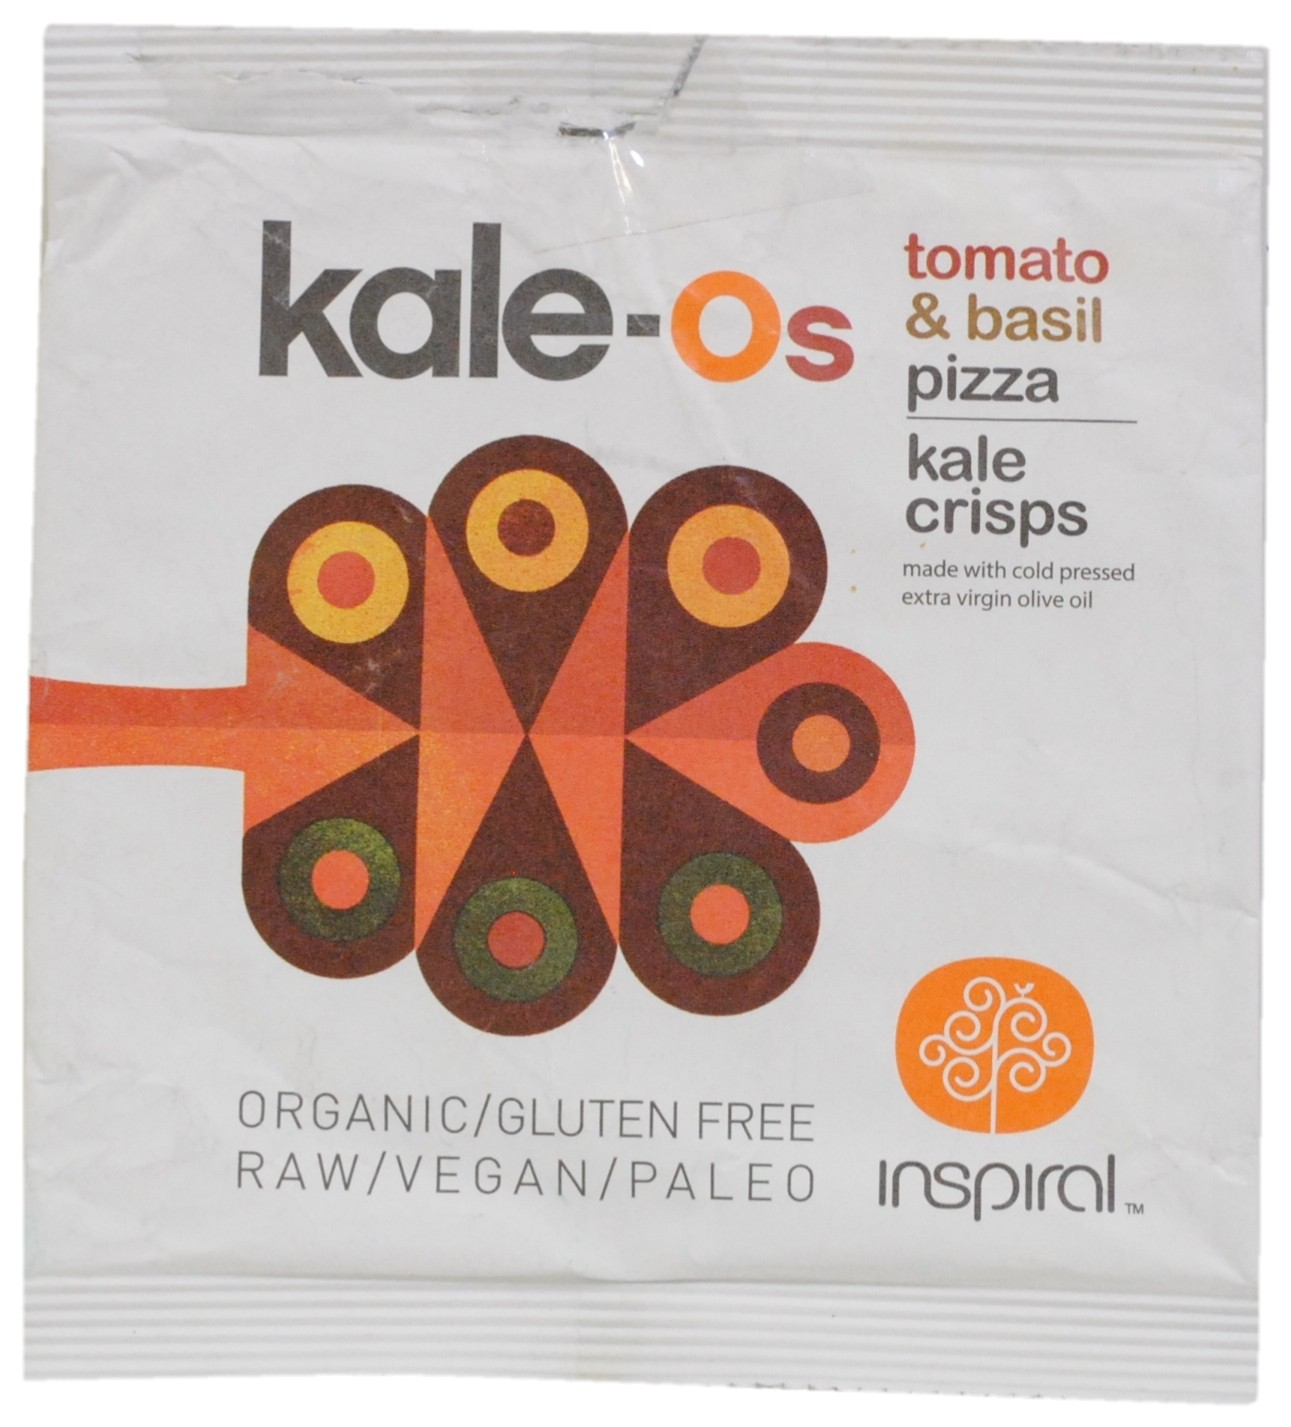 Tomato & Basil Pizza Flavoured Kale Crisps